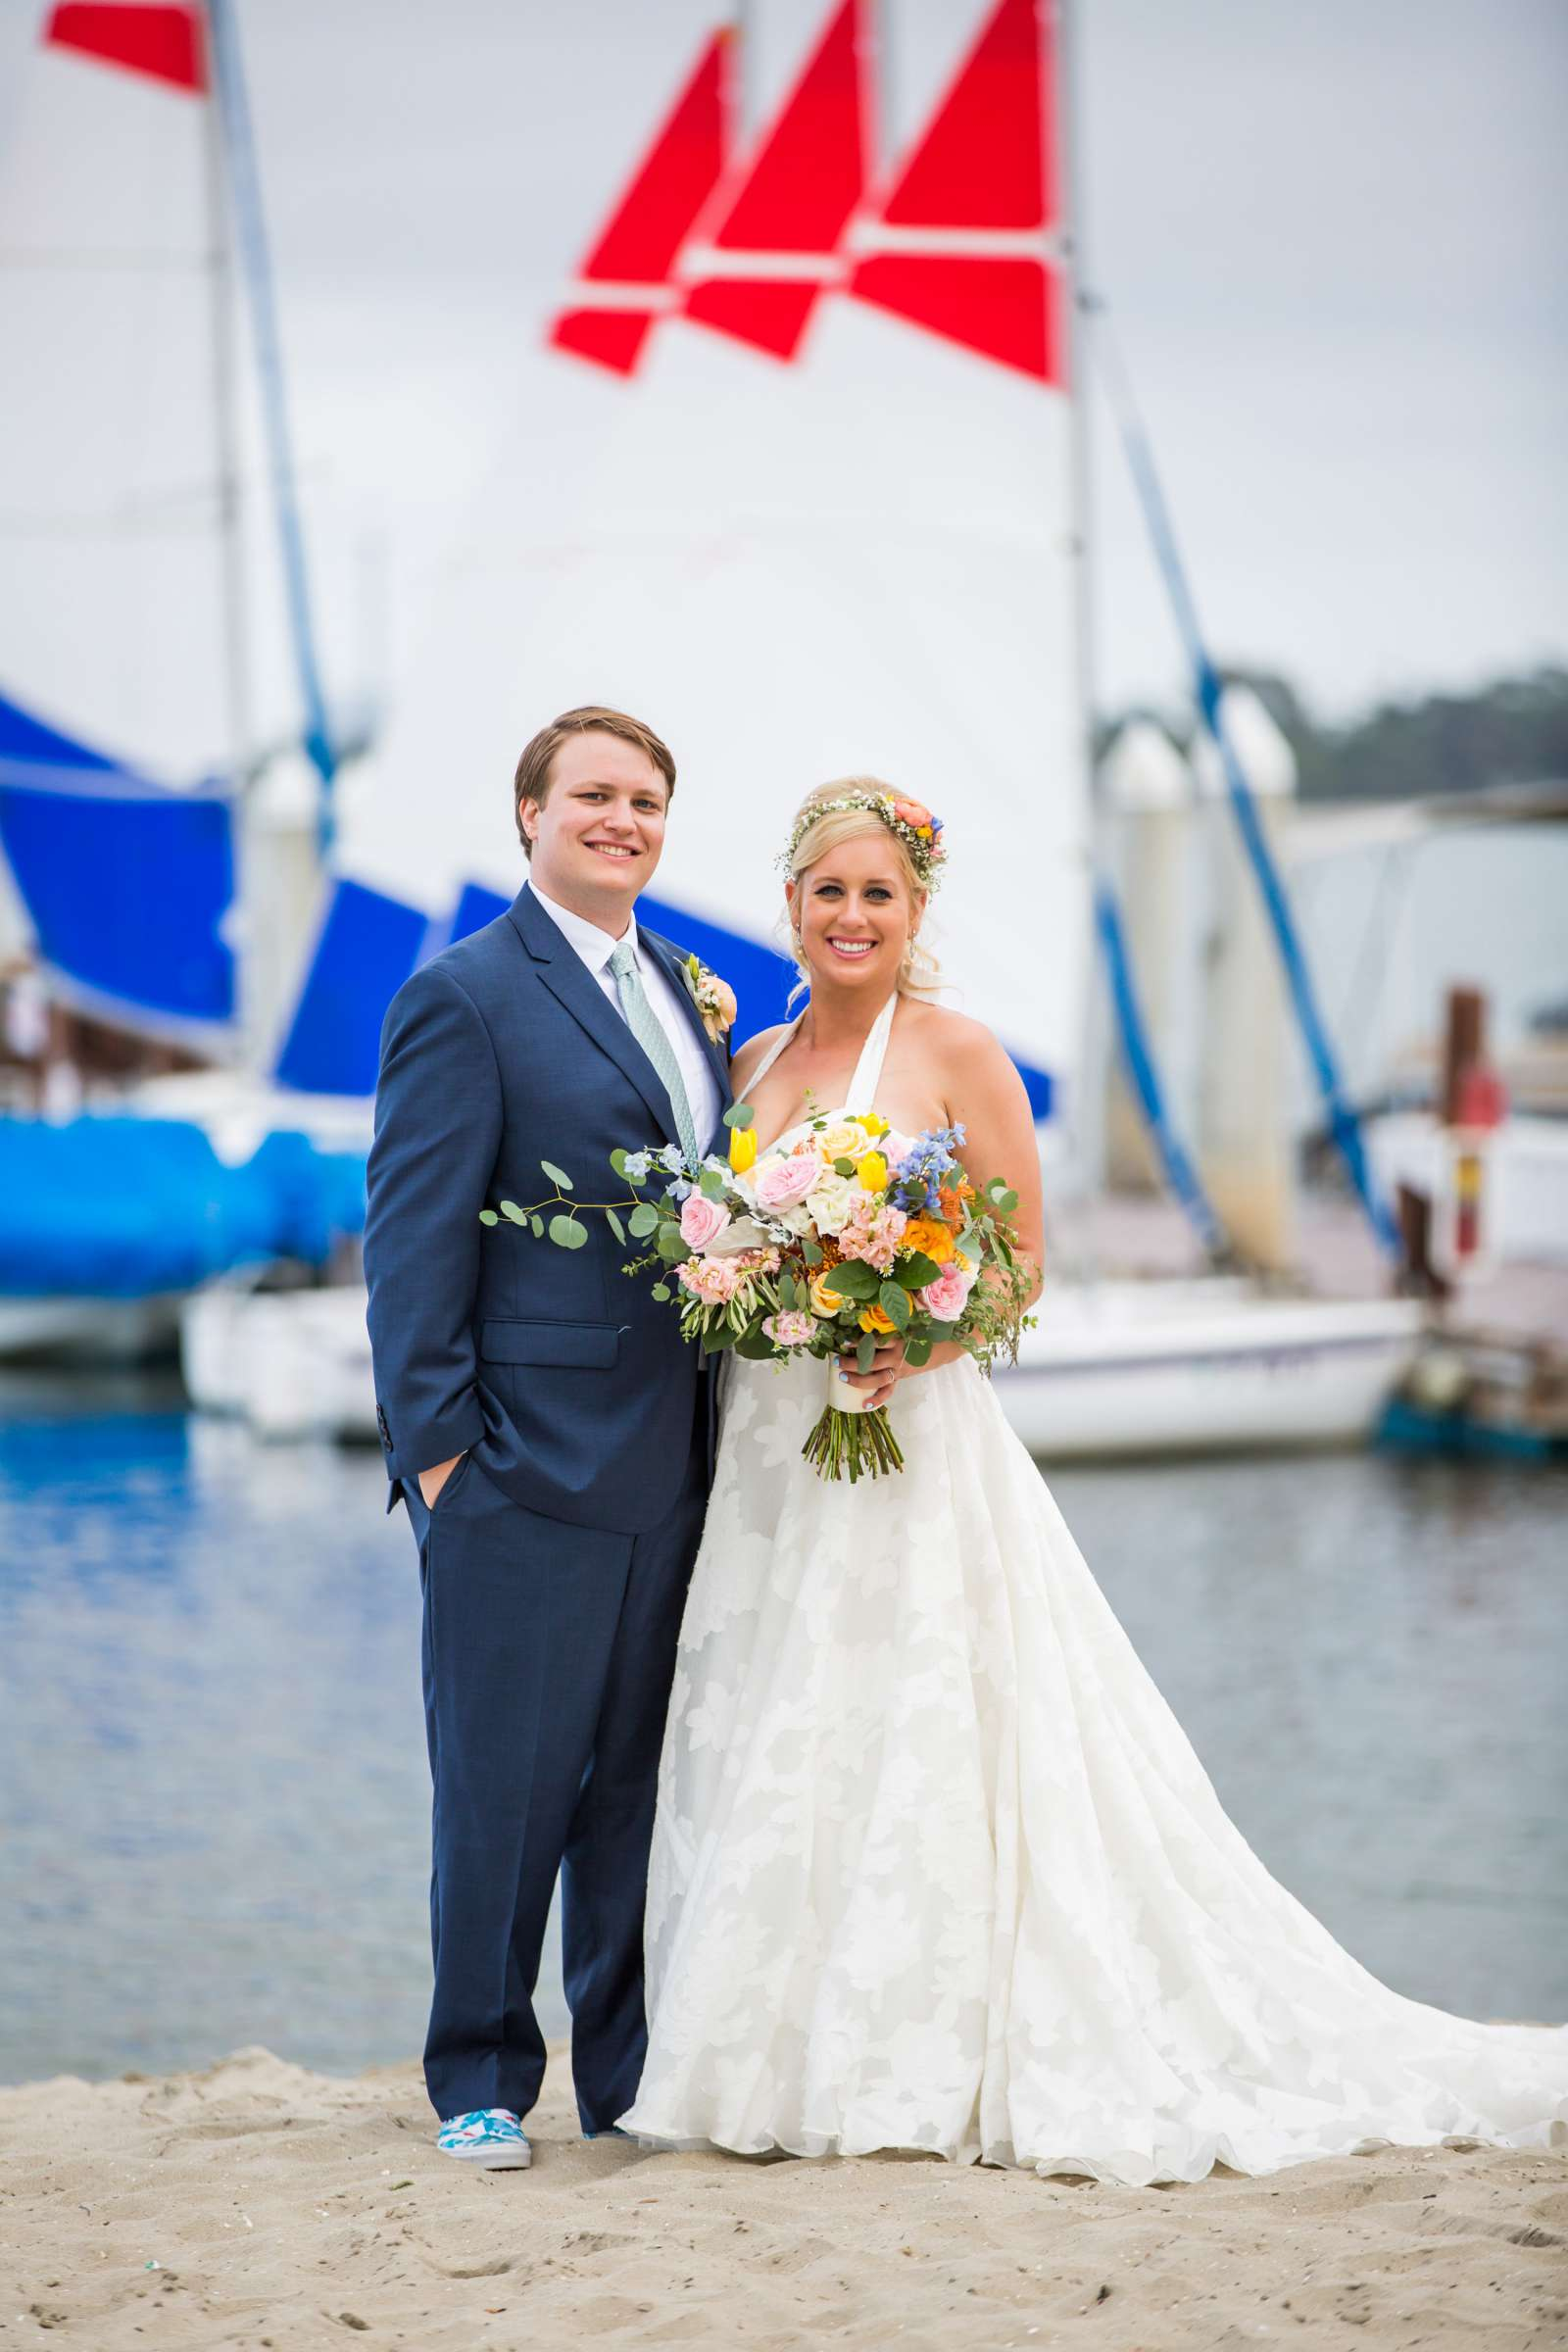 Catamaran Resort Wedding coordinated by Lavish Weddings, Brittany and David Wedding Photo #86 by True Photography